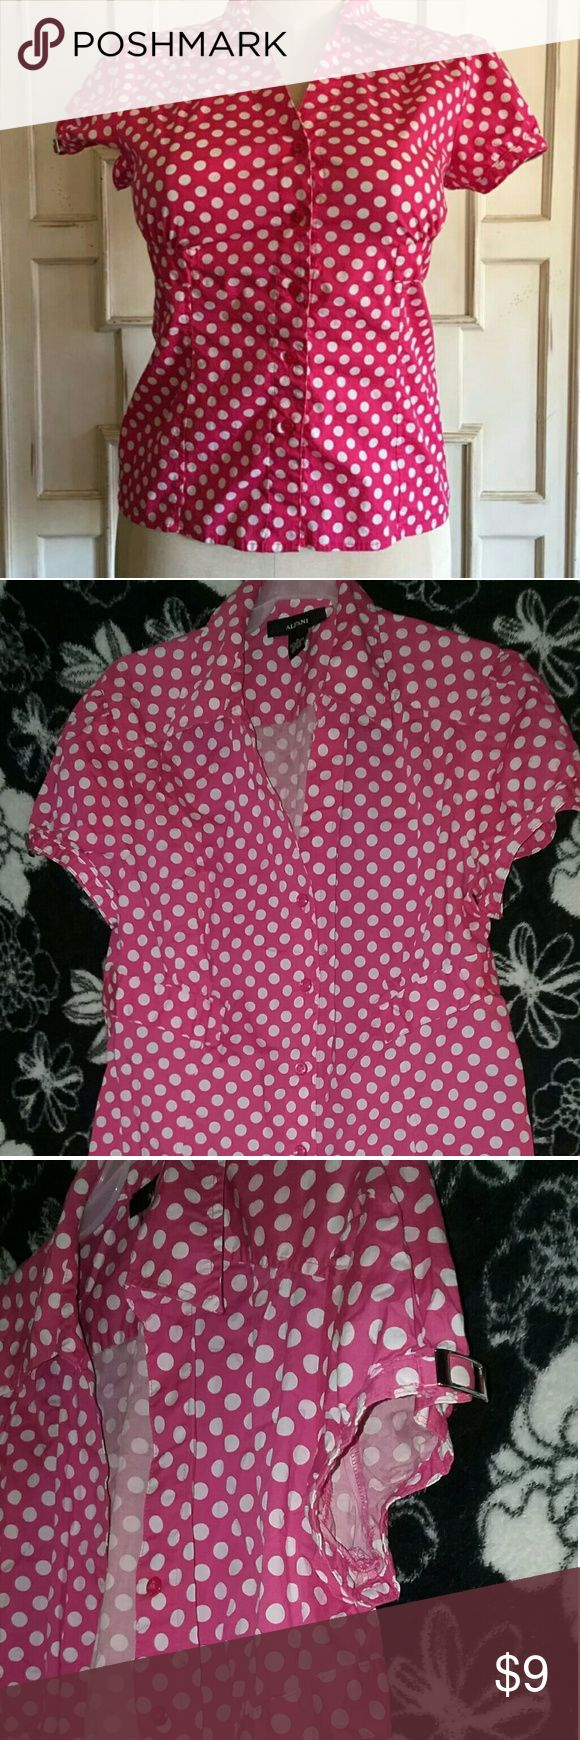 Pink with Polka Dots Short Sleeve Button Up Top. Pink with white polka dots. Fashion buckle on sleeves of shirt. Great Condition. Clean. Alfani Brand. Women's pink polka dot button down top in a size 8. Cute silver hardware detail at the sleeves. In excellent condition! No flaws. All measurements listed below are taken with the garment lying flat. Double measurements as needed.  Alfani Tops Button Down Shirts